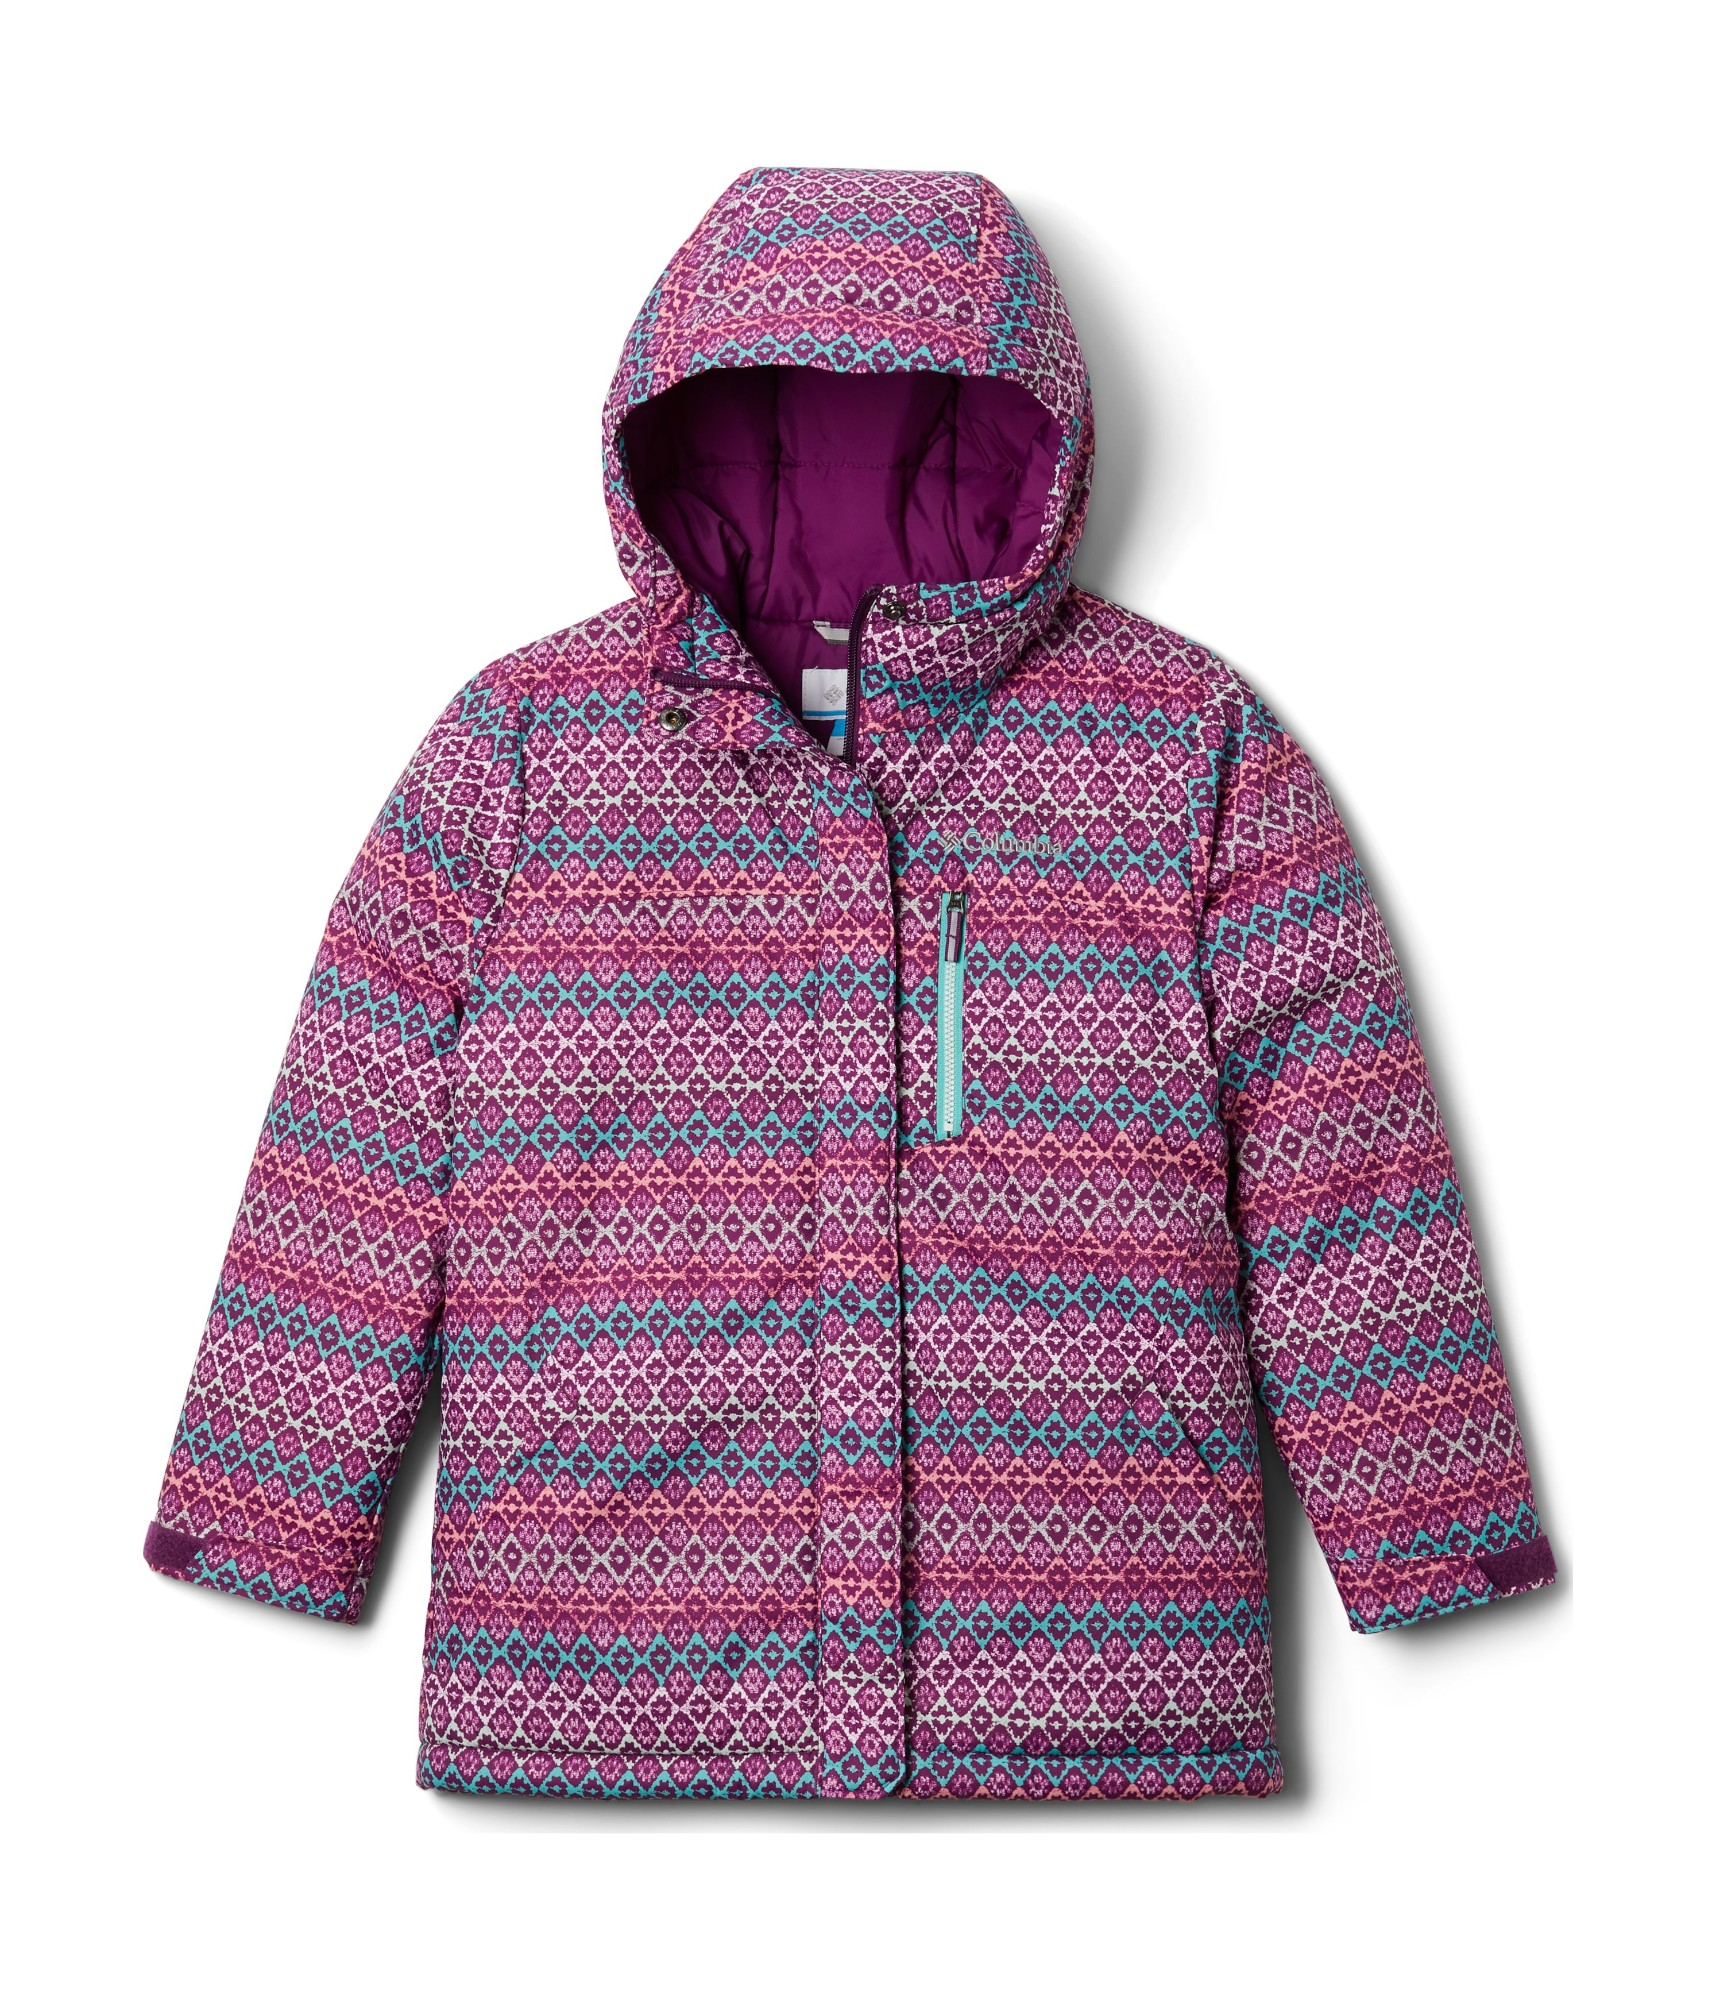 Columbia Alpine Free Fall II Jacket 1863463 Plum/Diamond Stripe Print 140